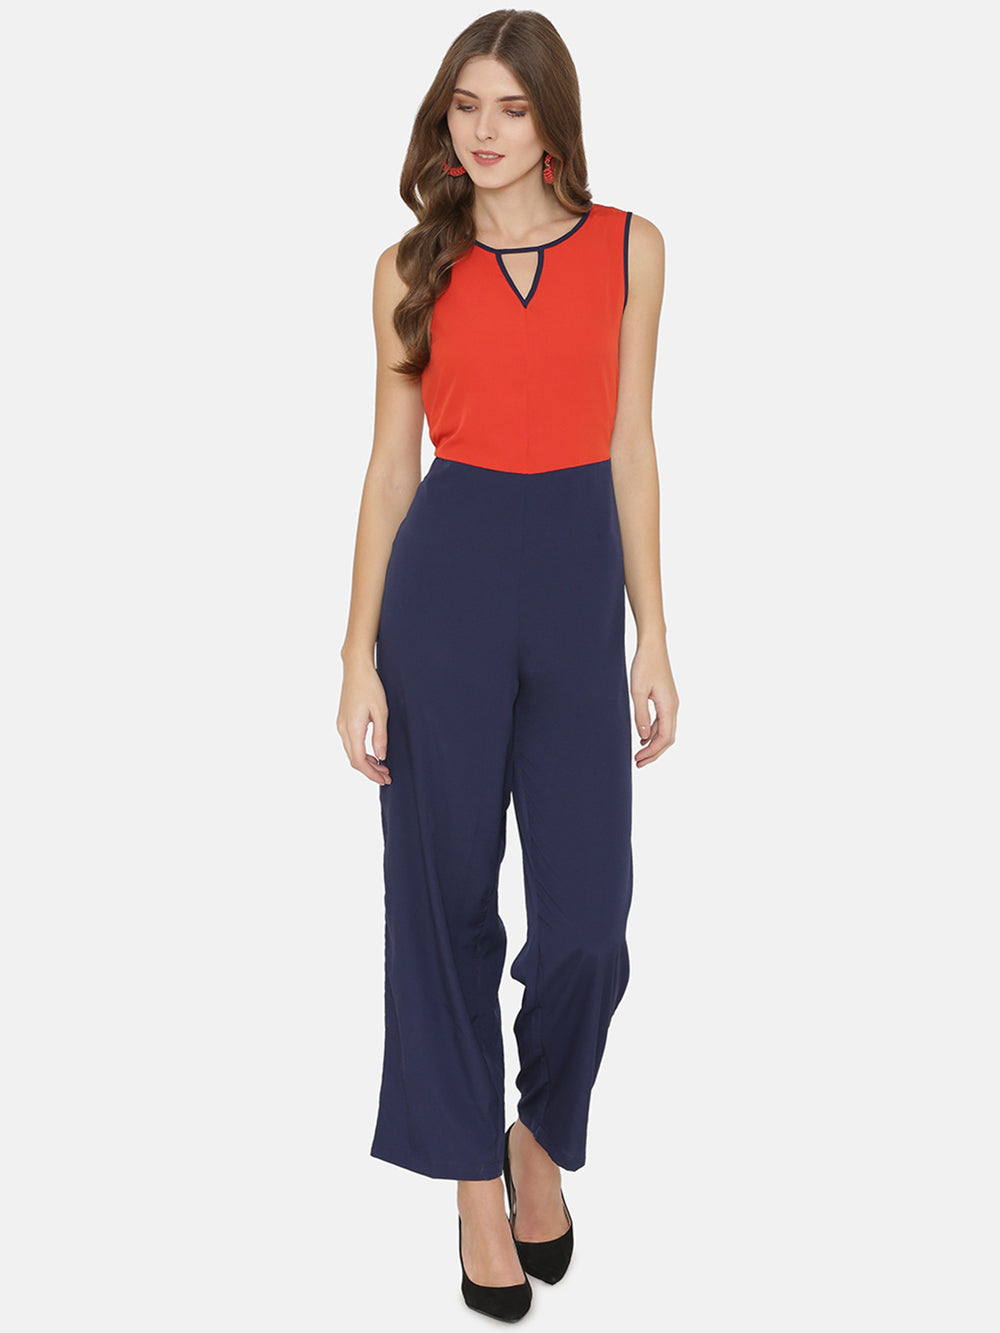 eyelet Red & Blue Colourblocked Basic Jumpsuit